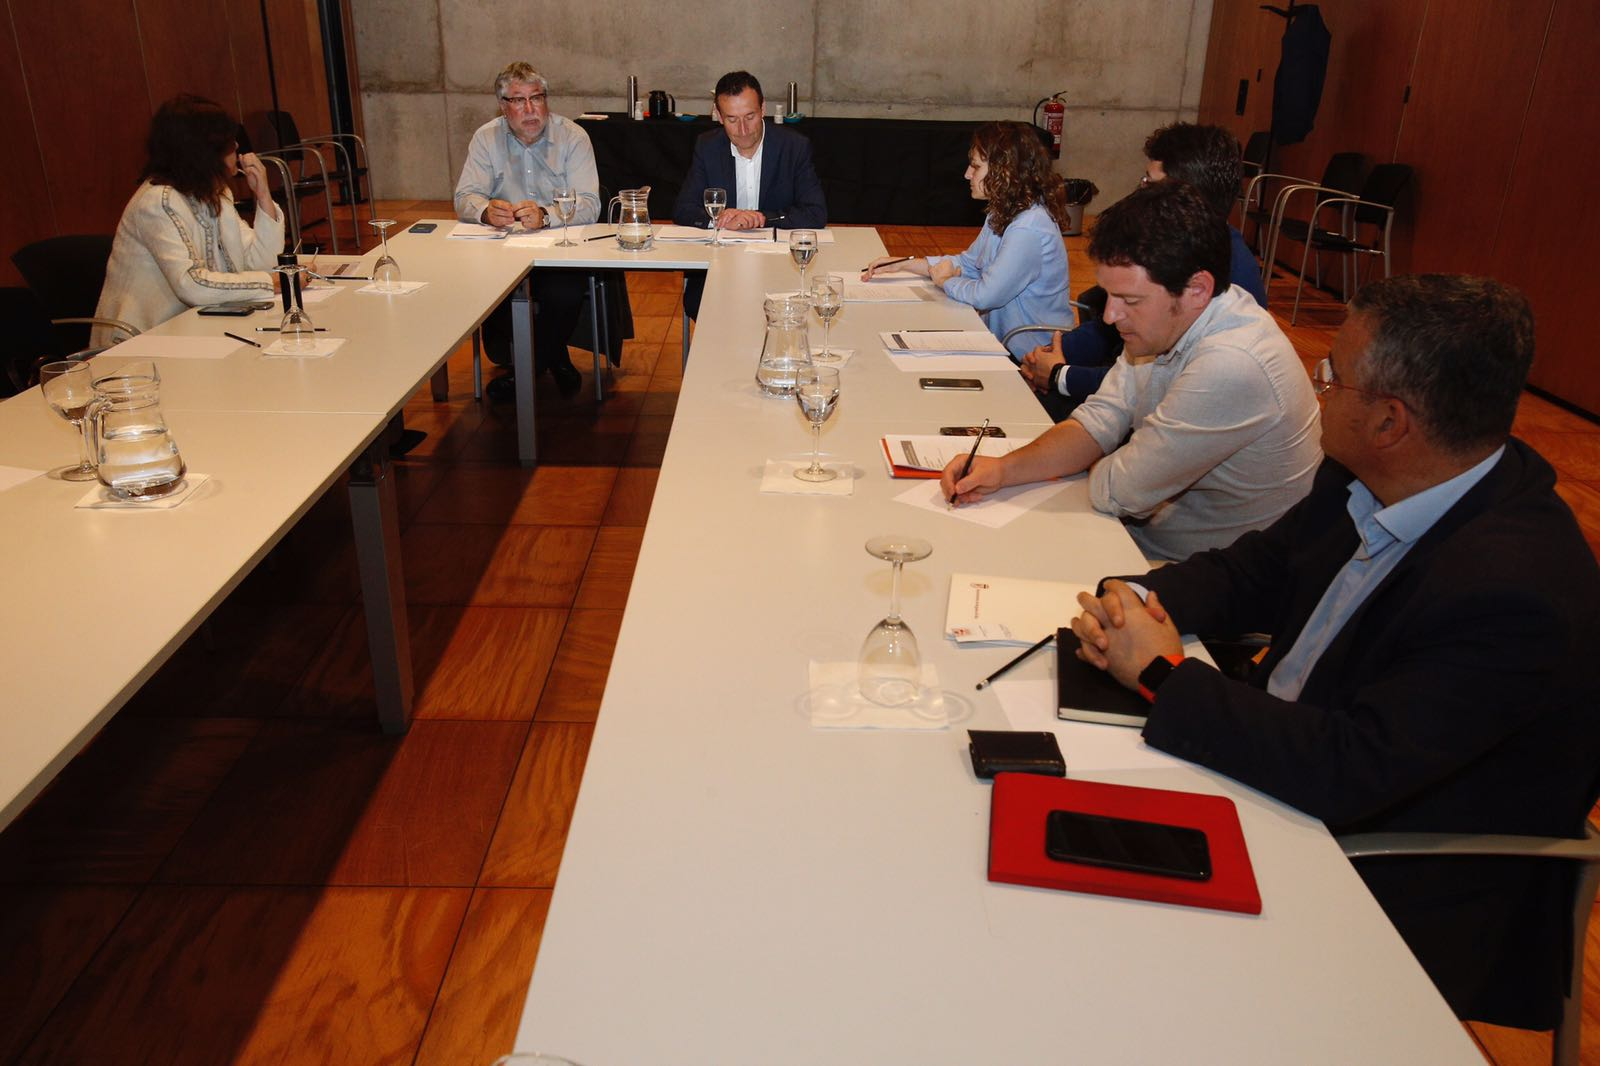 Citilab Hosts The Last Meeting Of The Network Of Local Entities For Transparency And Participation